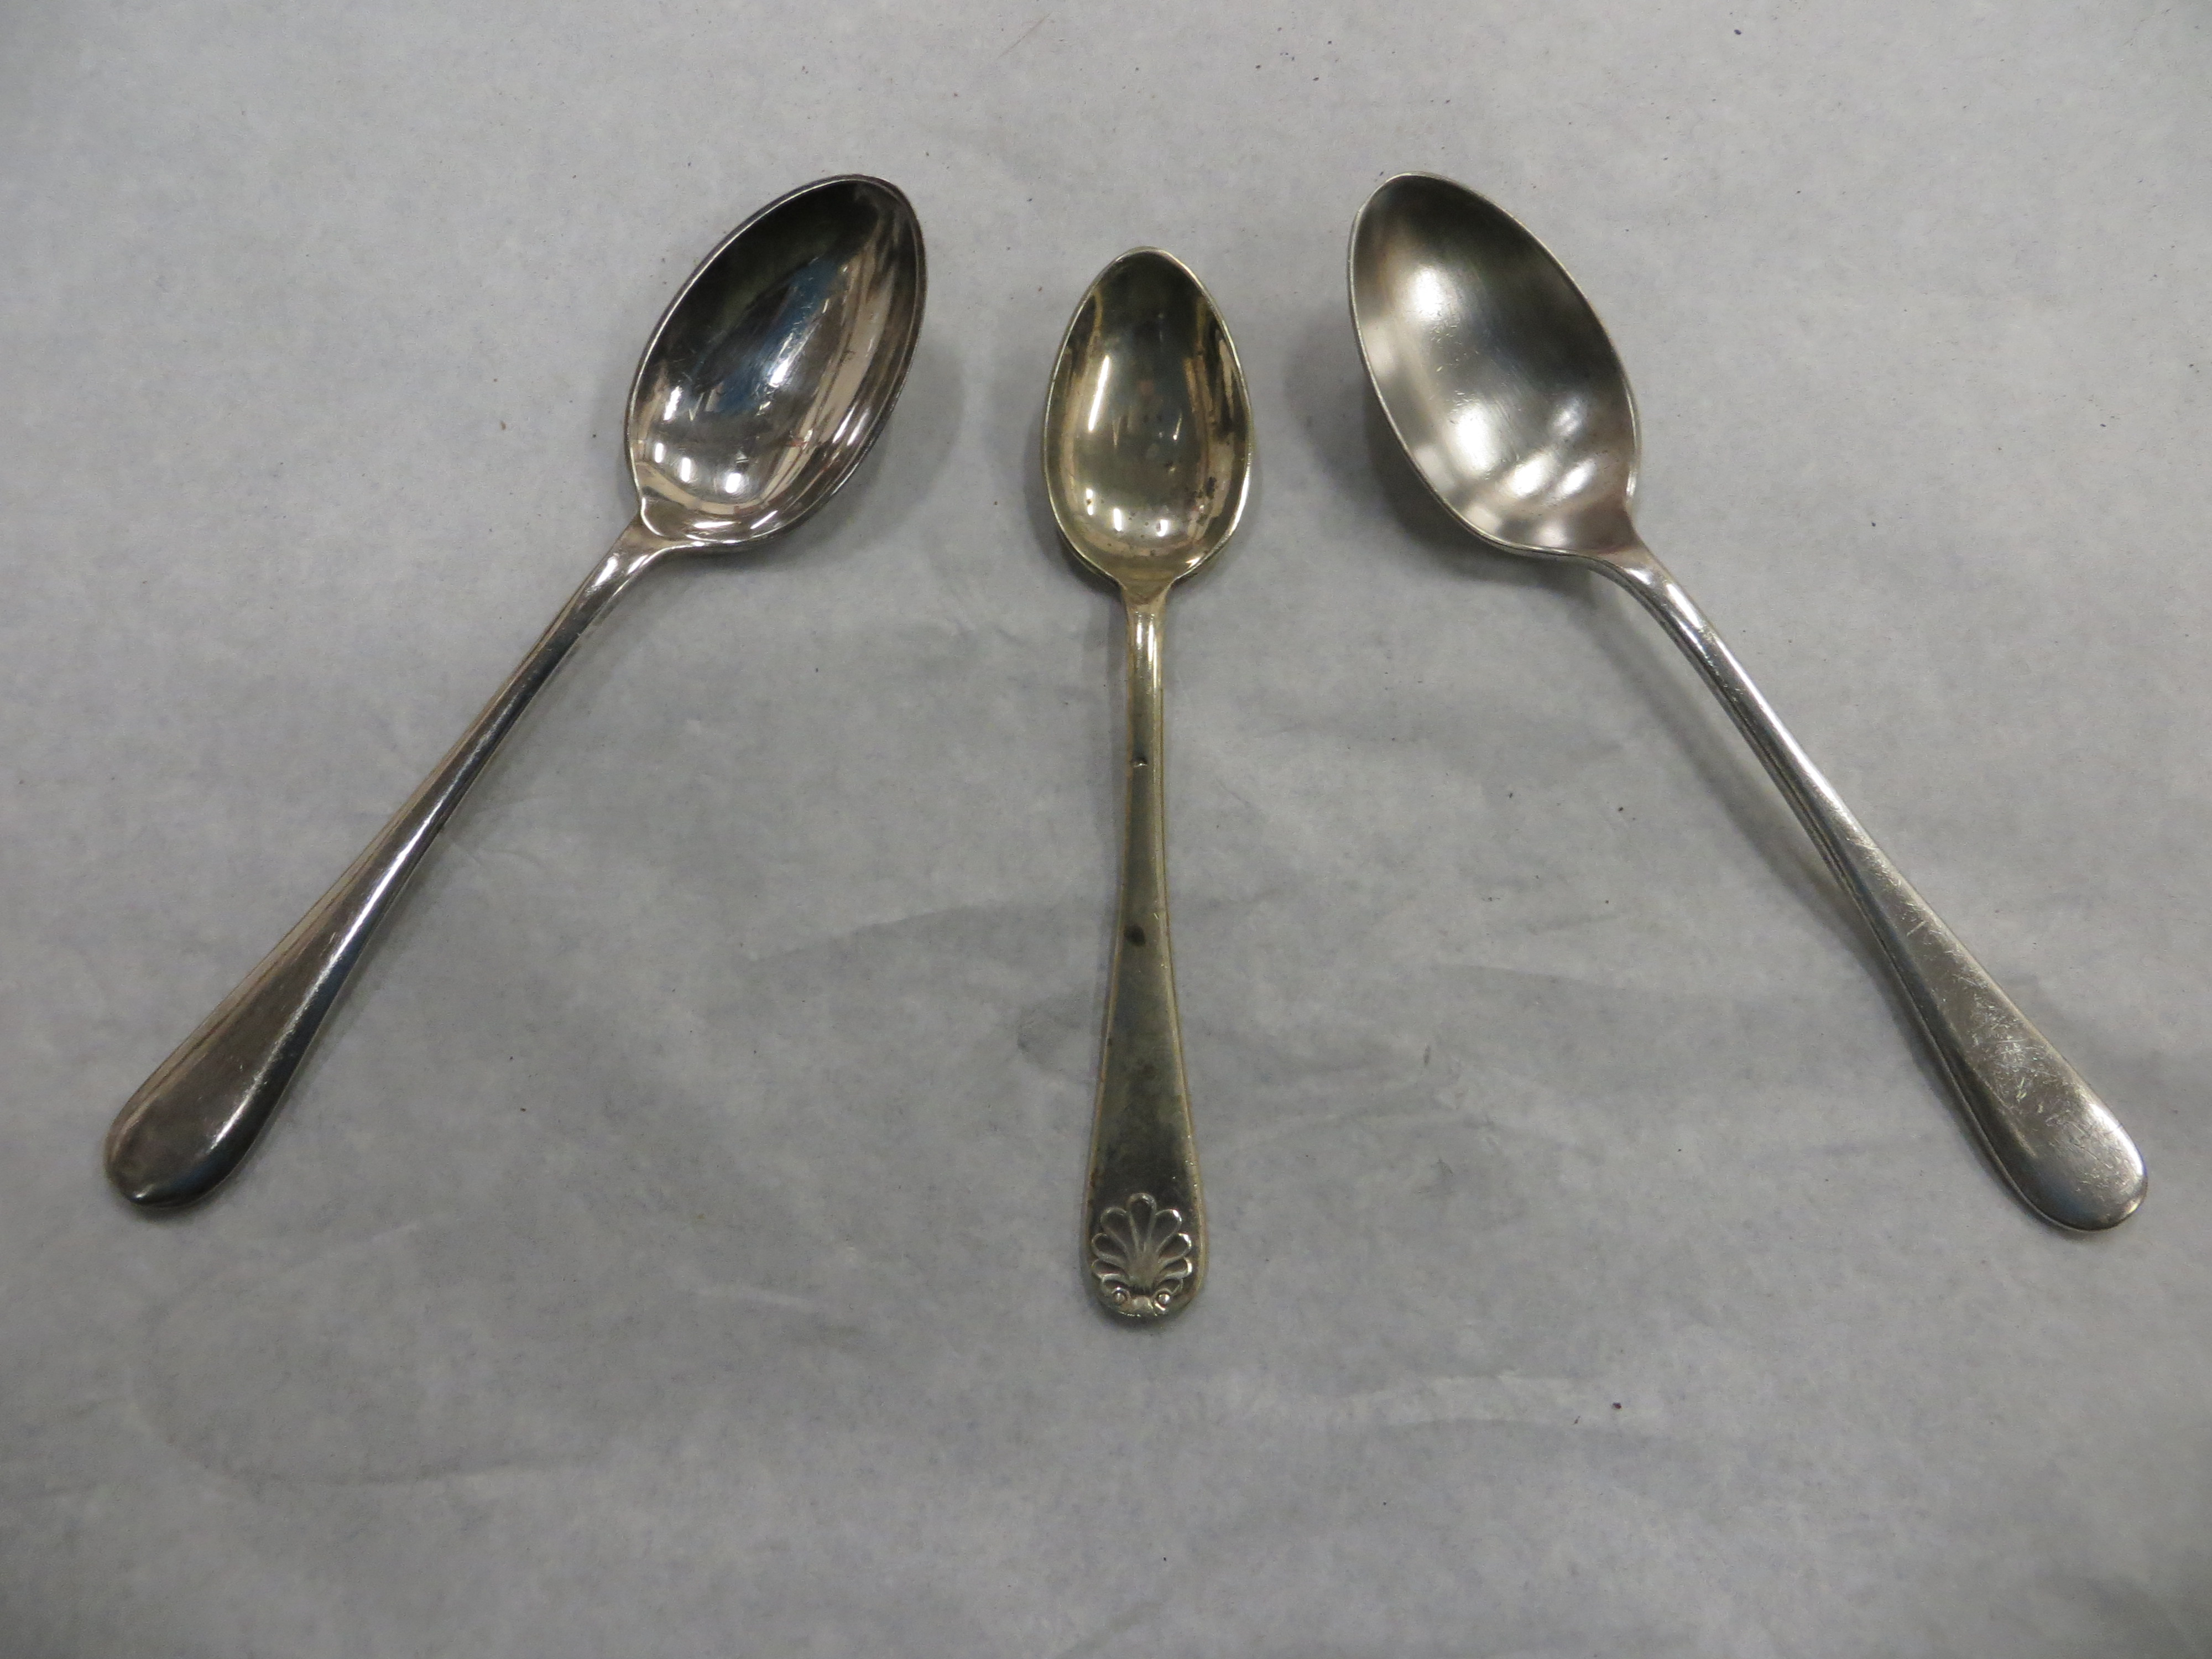 how to clean metal spoons